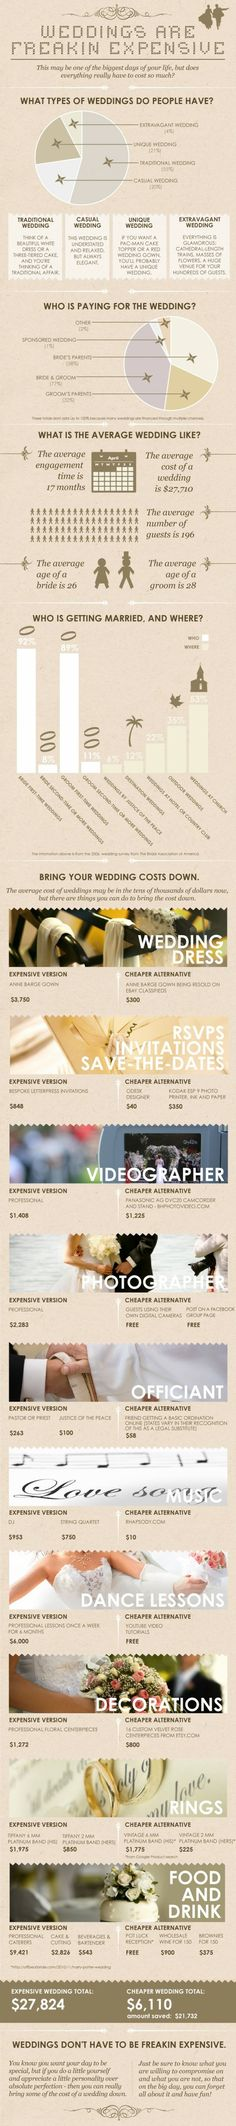 weddings are freakin expensive! how to save money on your wedding.